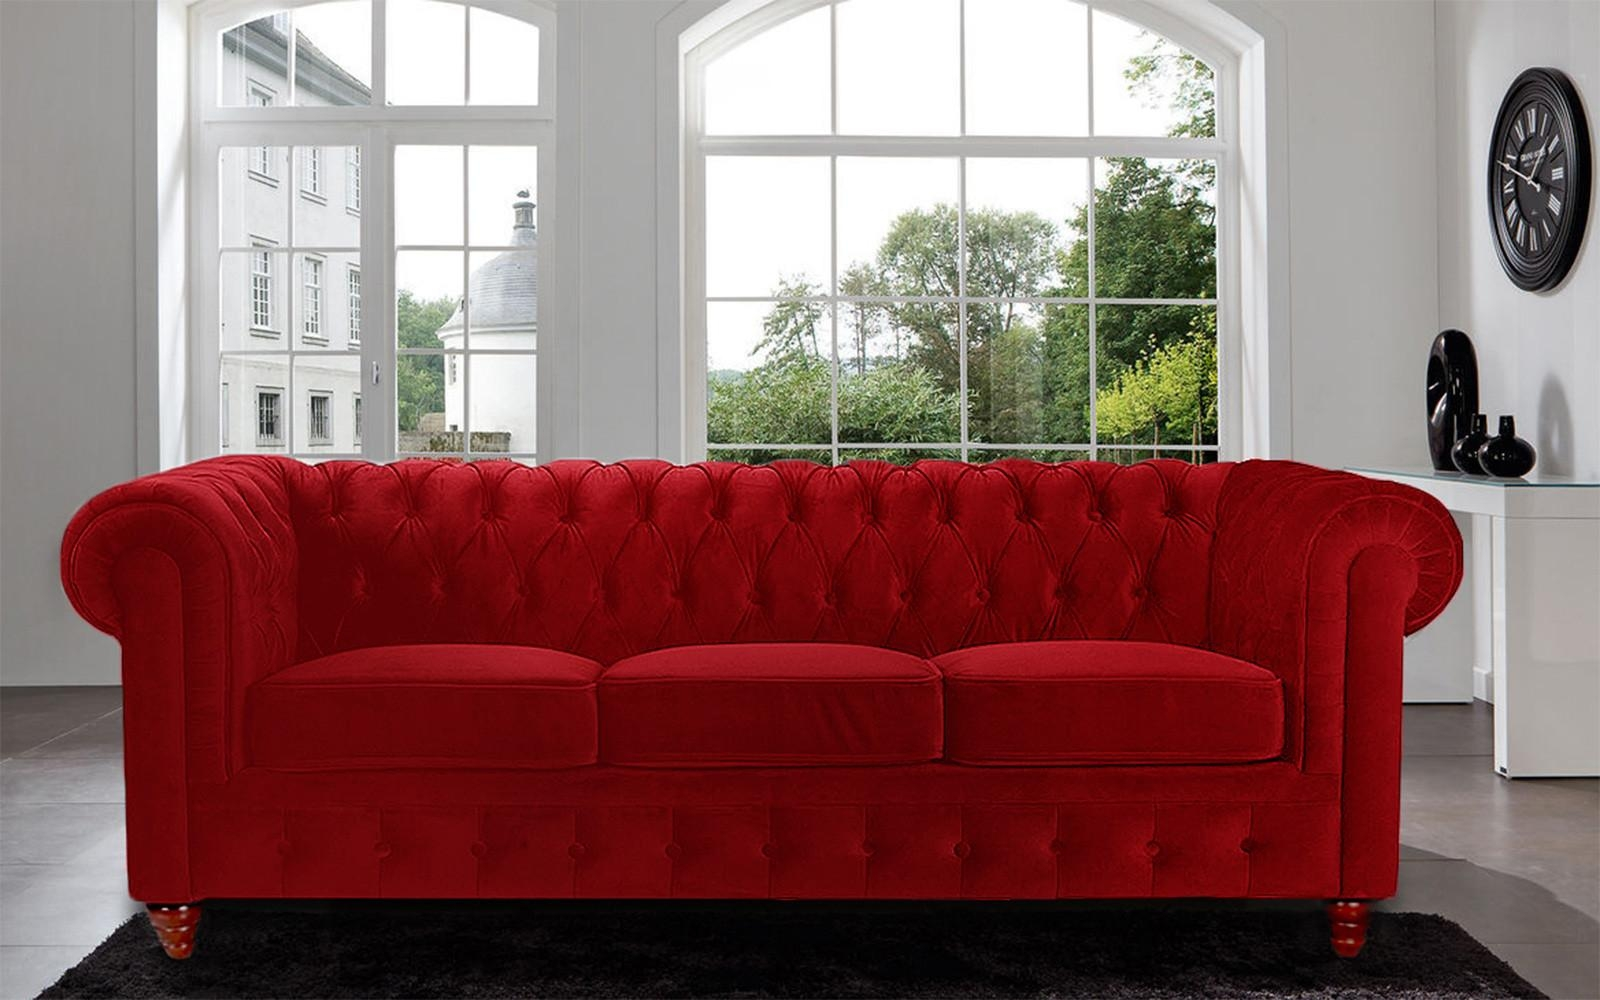 Sofas Center : Amazing Velvet Chesterfielda Image Inspirations Regarding Red Leather Chesterfield Sofas (View 15 of 20)